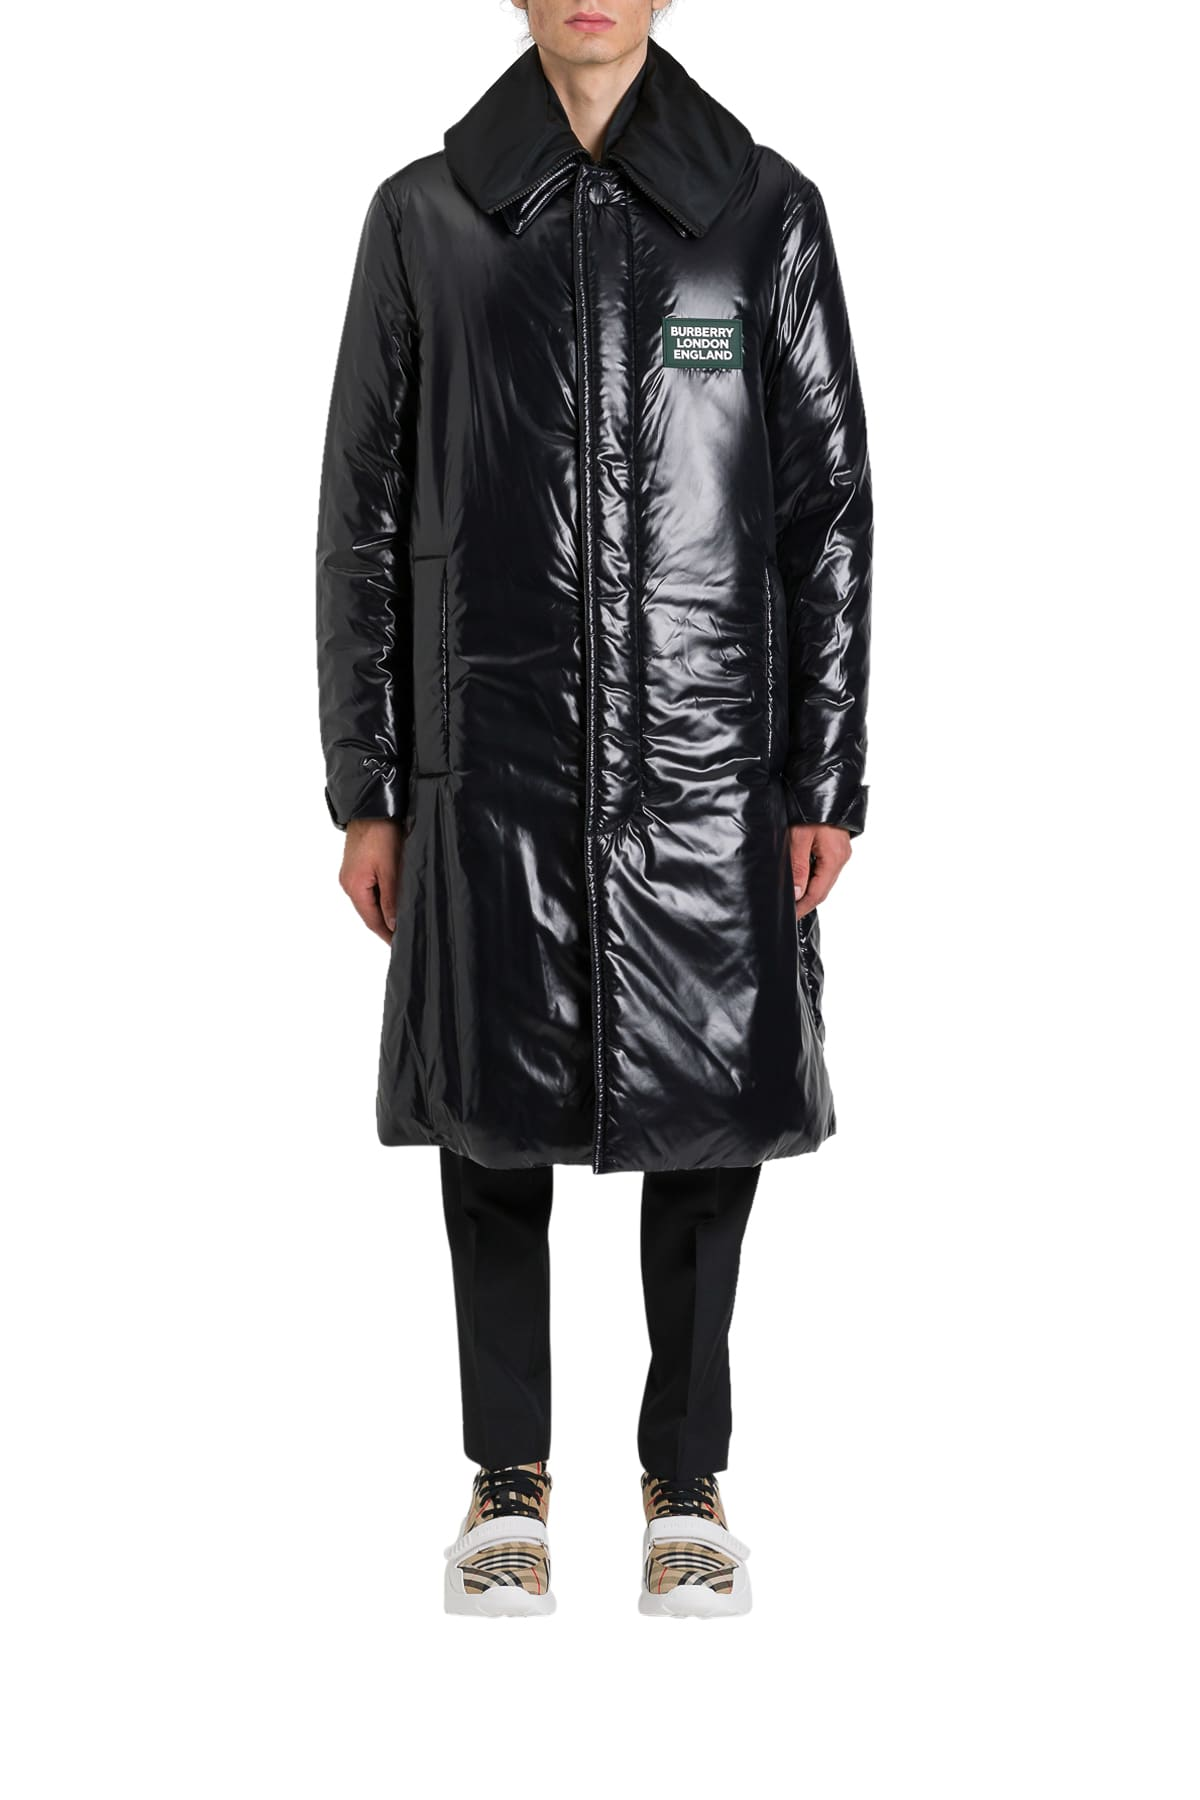 hot sale clearance prices really comfortable Burberry Burberry Padded Coat - Nero - 11119405 | italist